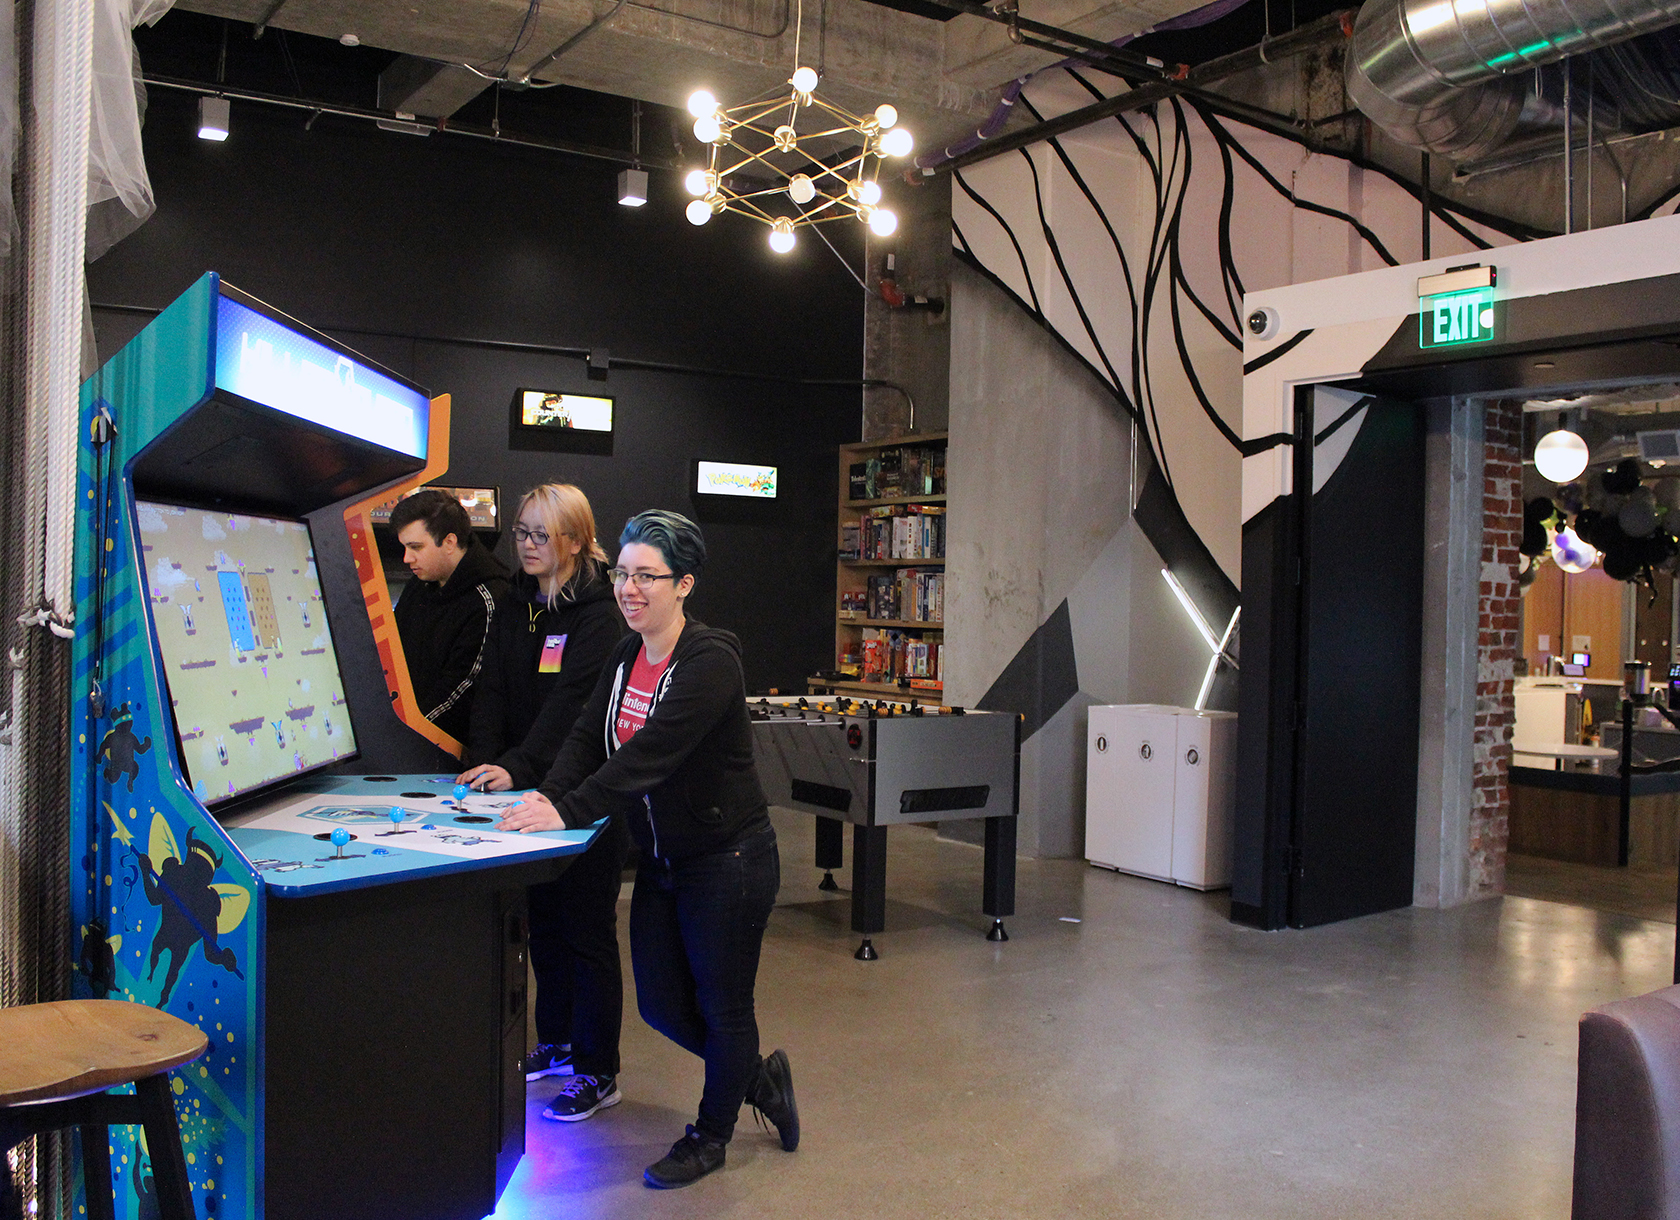 Three people playing arcade games in a game room.